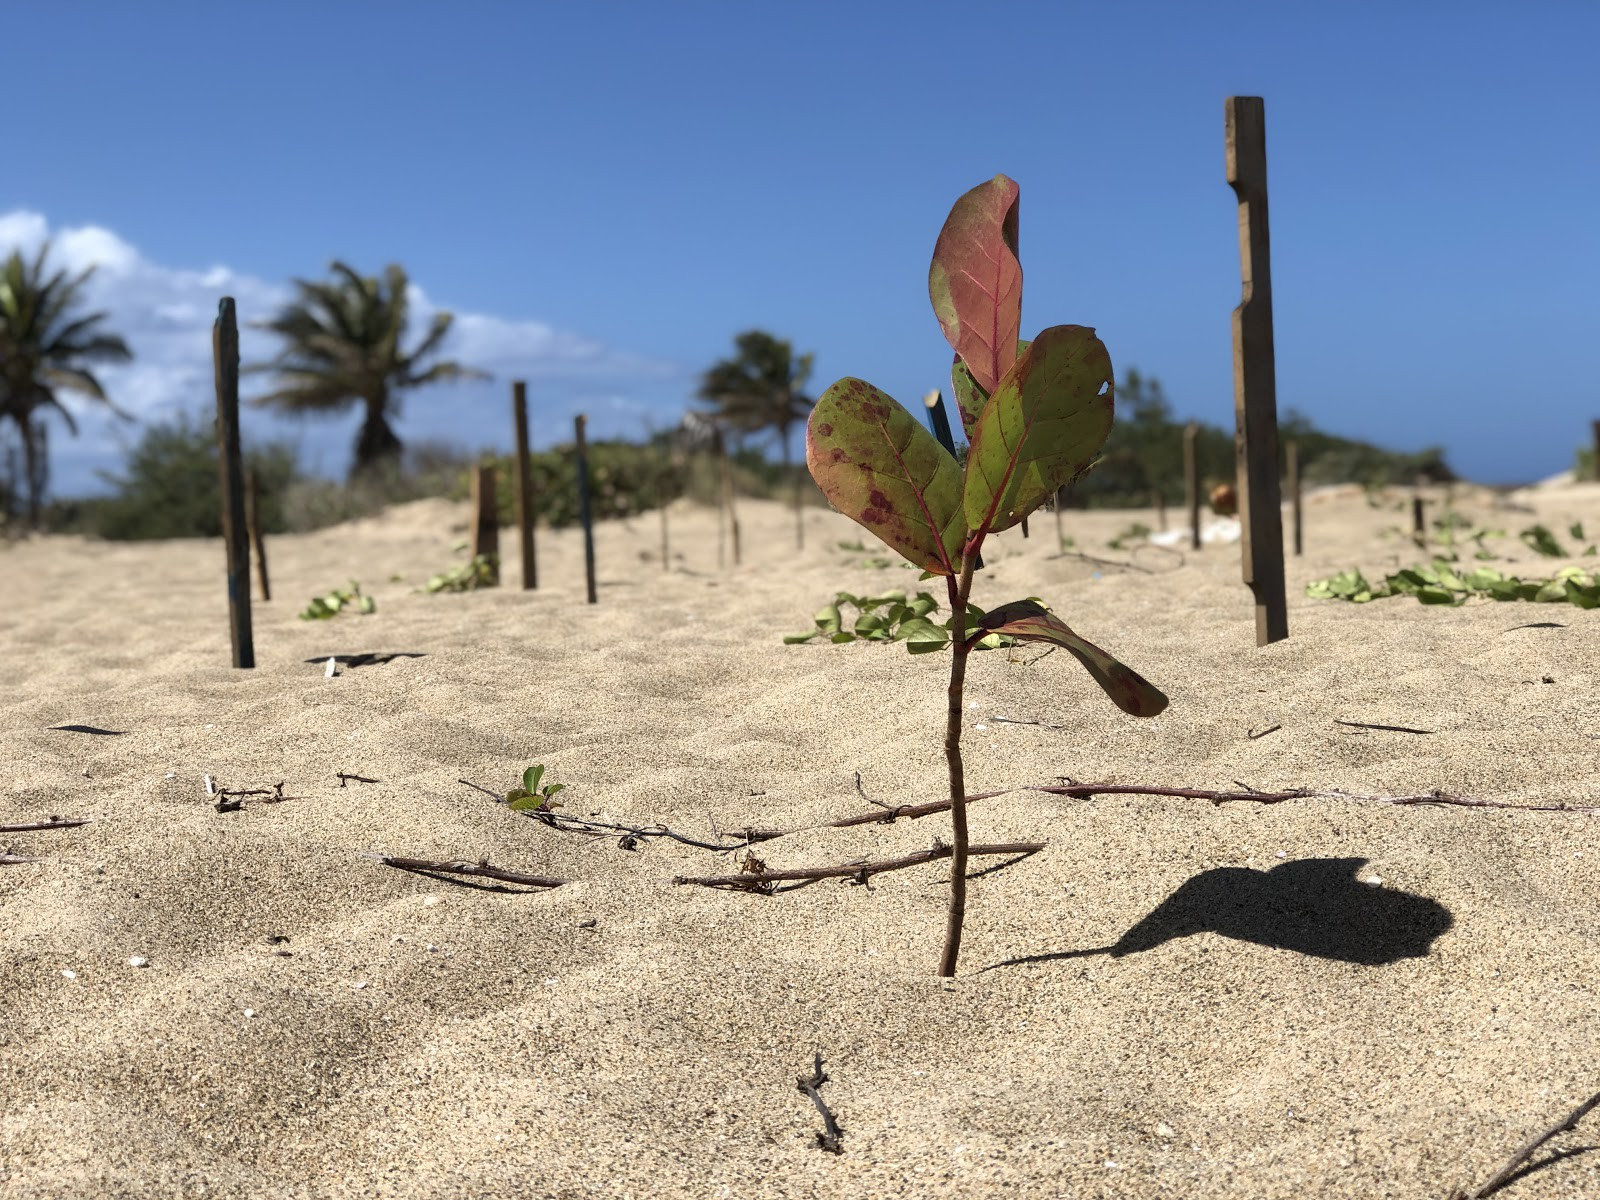 Rising from loose champagne sand, the rounded leaves of a juvenile sea grape contrast the spiny palms in the distance.